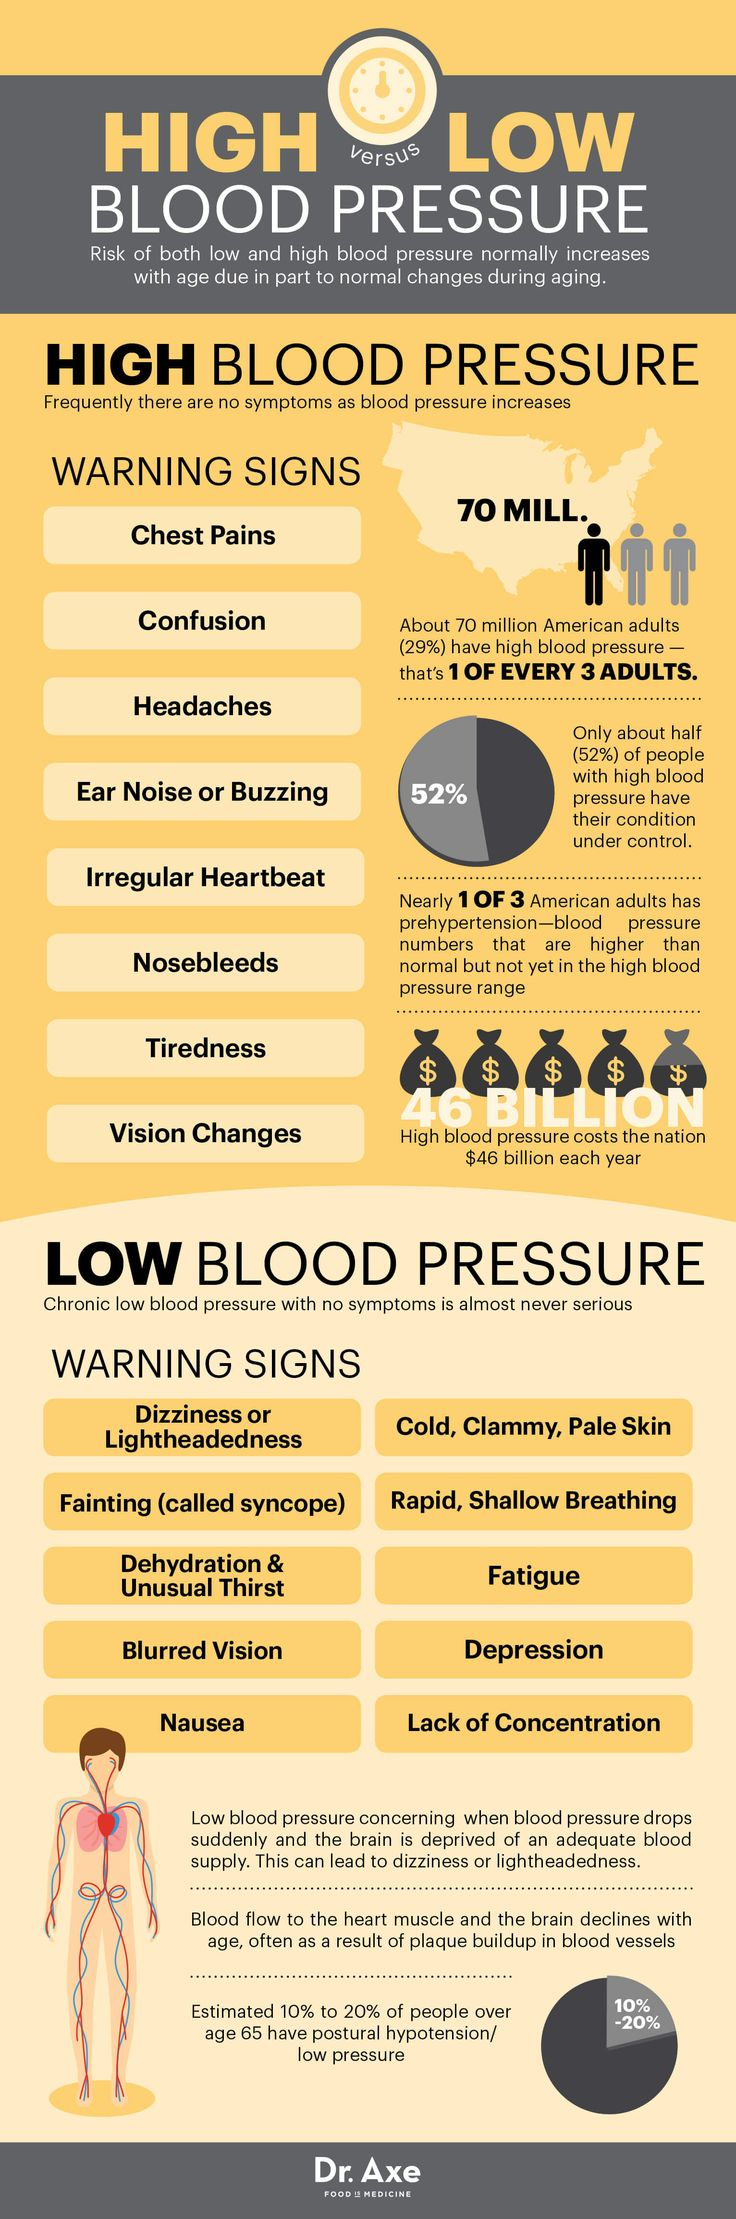 What Is High Blood Pressure Range